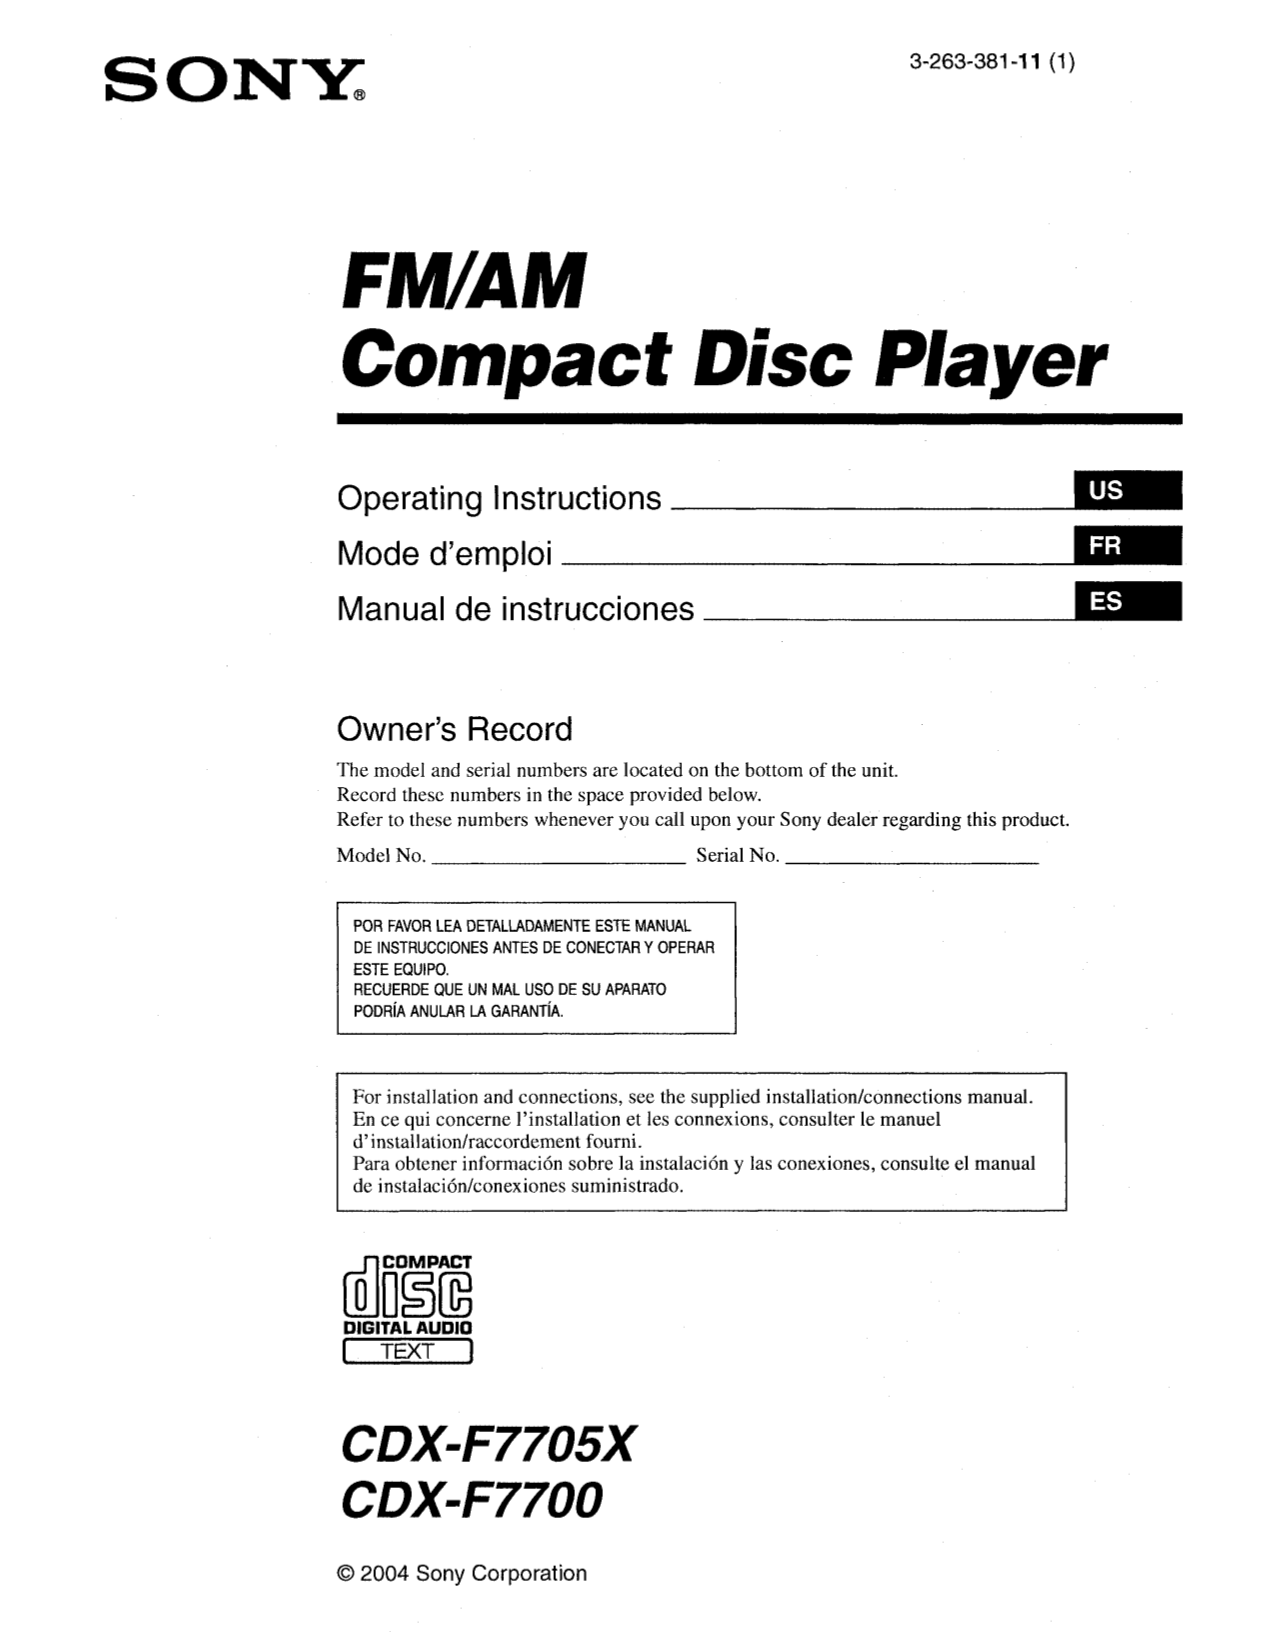 158f7700.pdf 0 download free pdf for sony cdx f7705x car receiver manual sony cdx f5700 wiring diagram at readyjetset.co